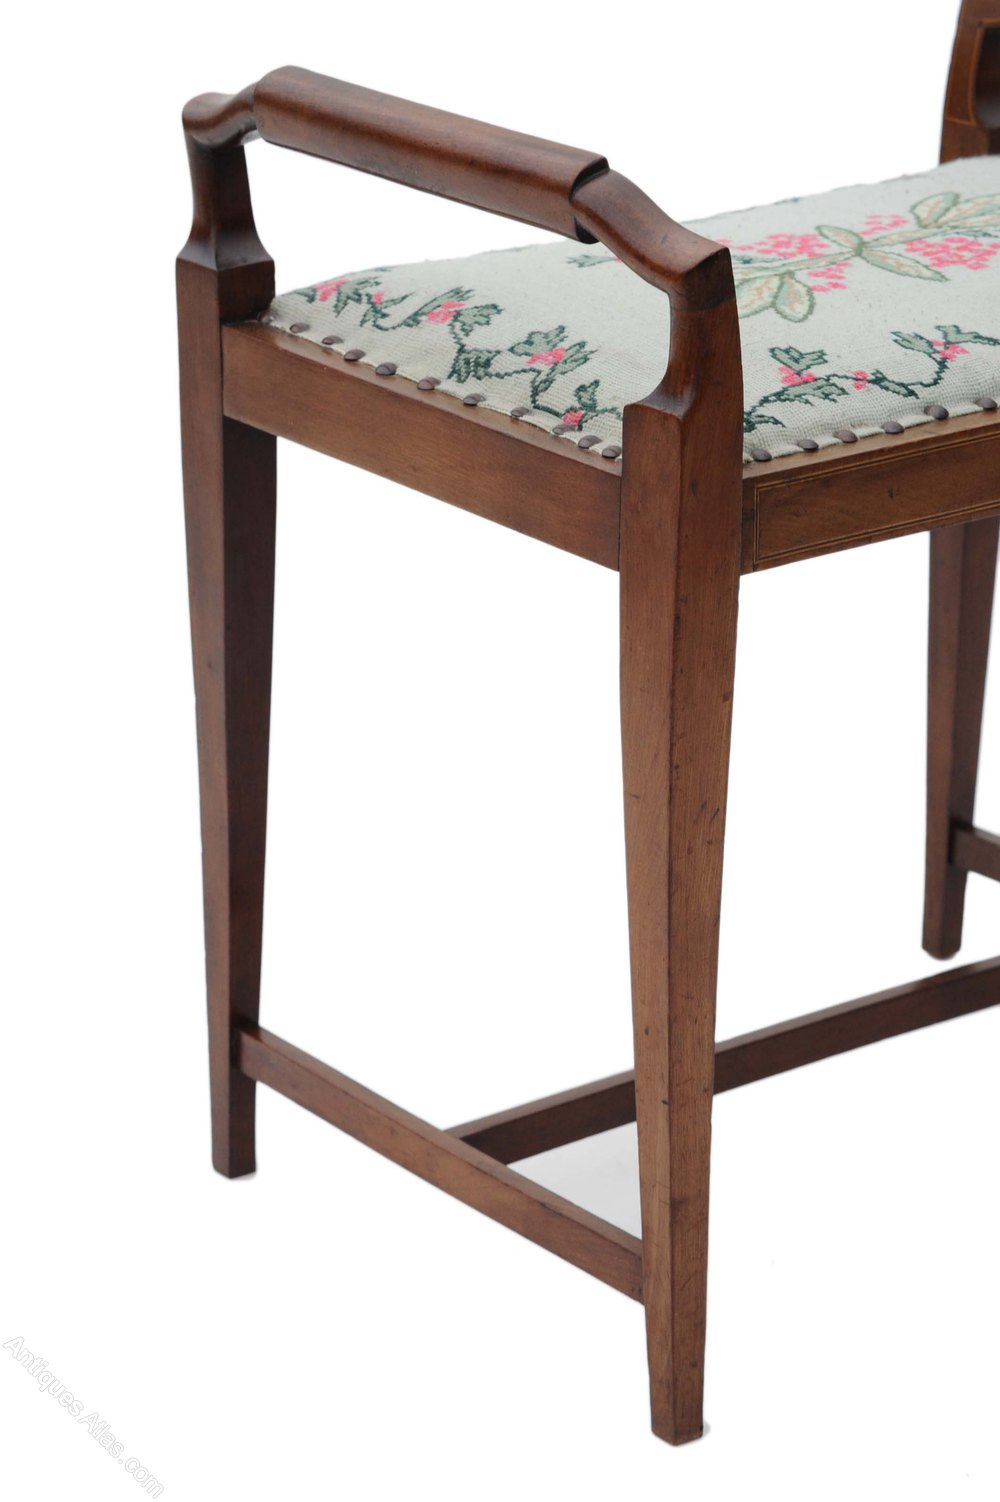 Dressing Table Chairs And Stools: Edwardian Walnut Dressing Table Piano Music Stool